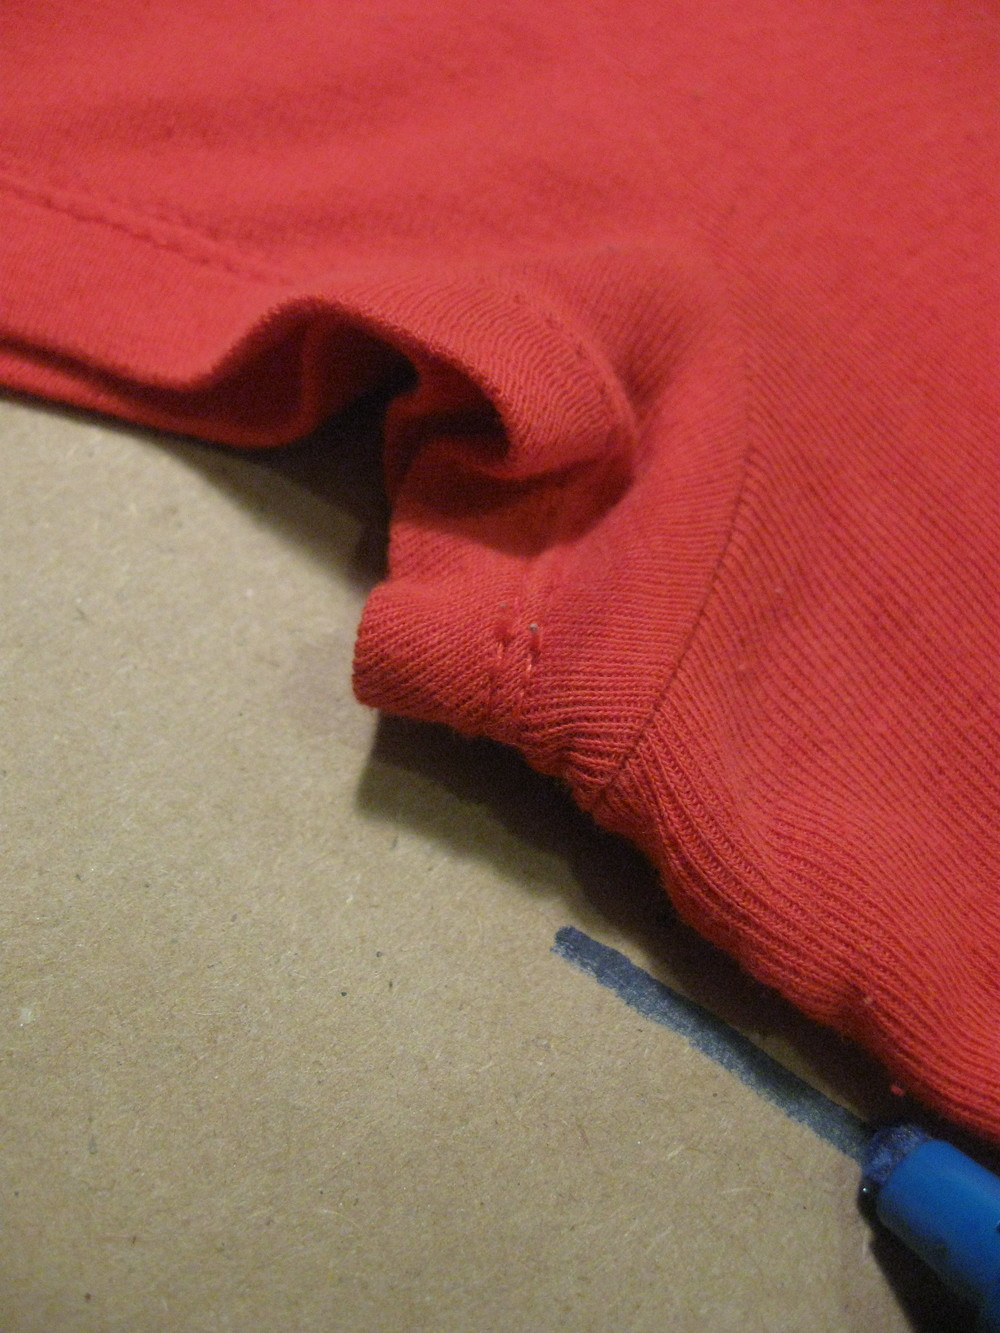 Down one side of the shirt. Begin tracing at the seam line where the sleeve and body are sewn together, as shown.